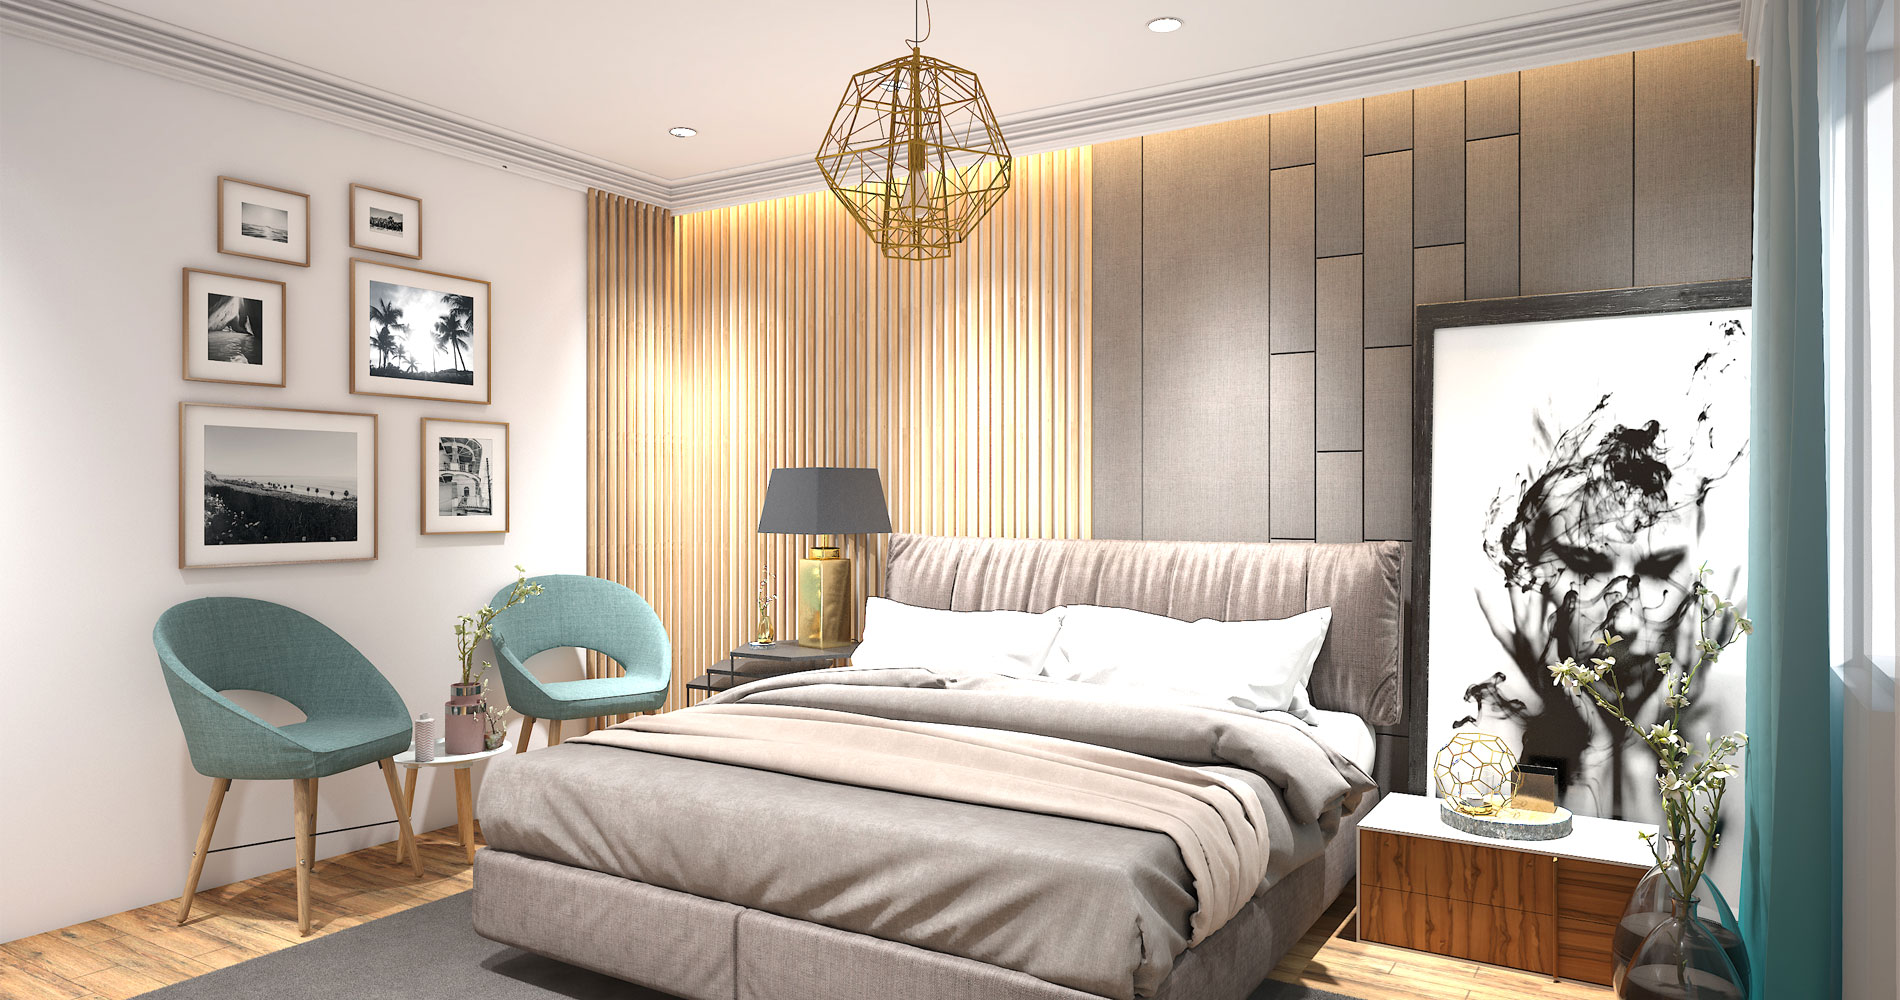 Rustic beauty wall cladding in the room